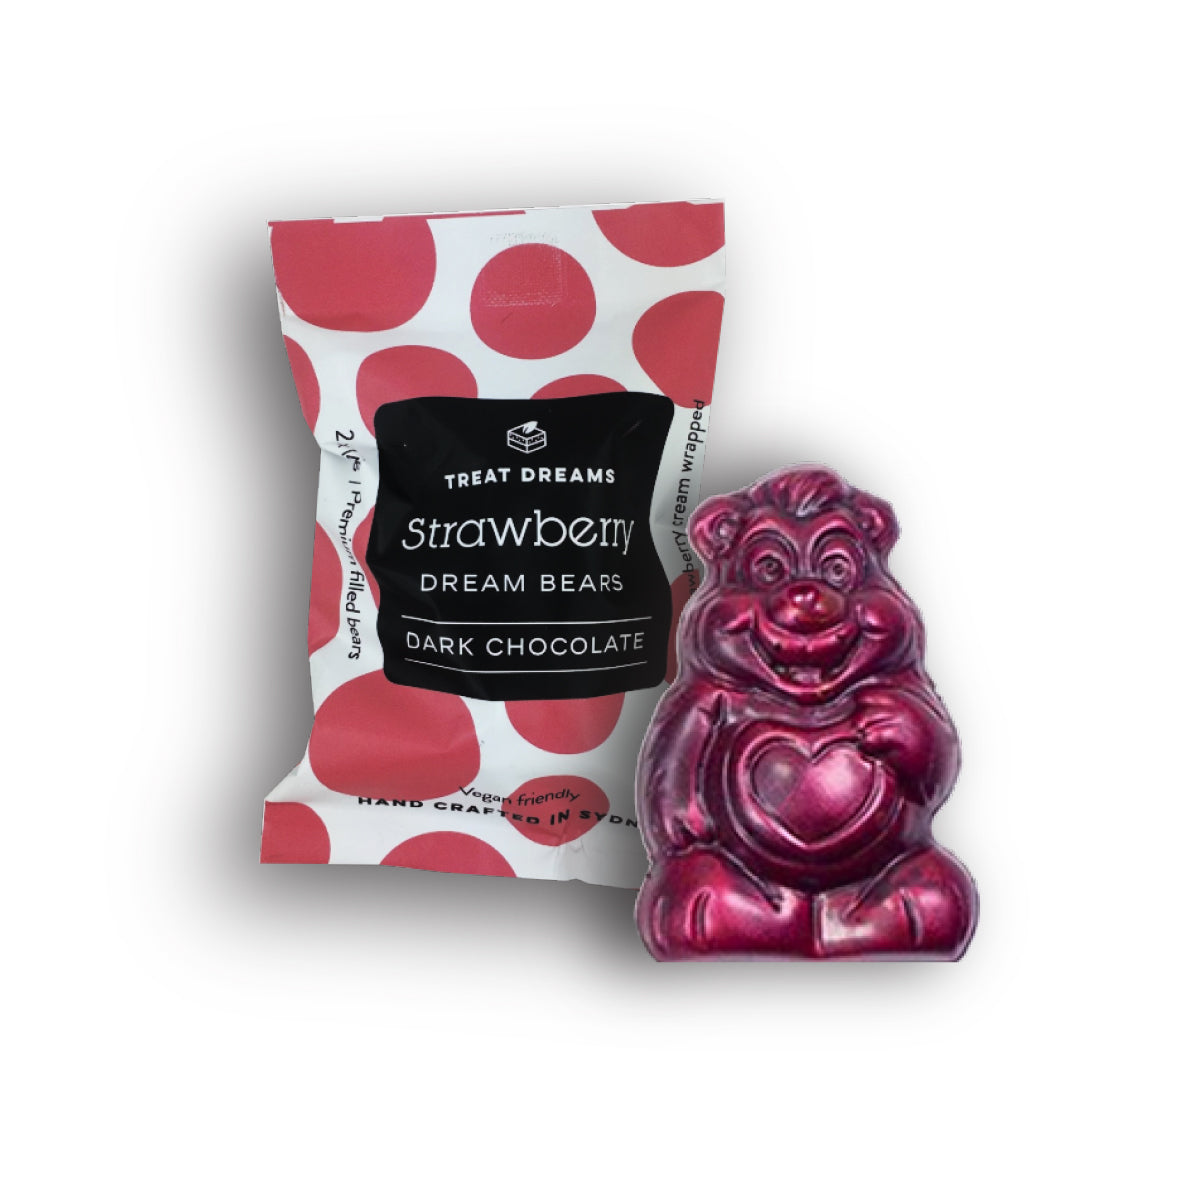 Treat Dreams - Dream Bear - Strawberry 2 Pack 28g